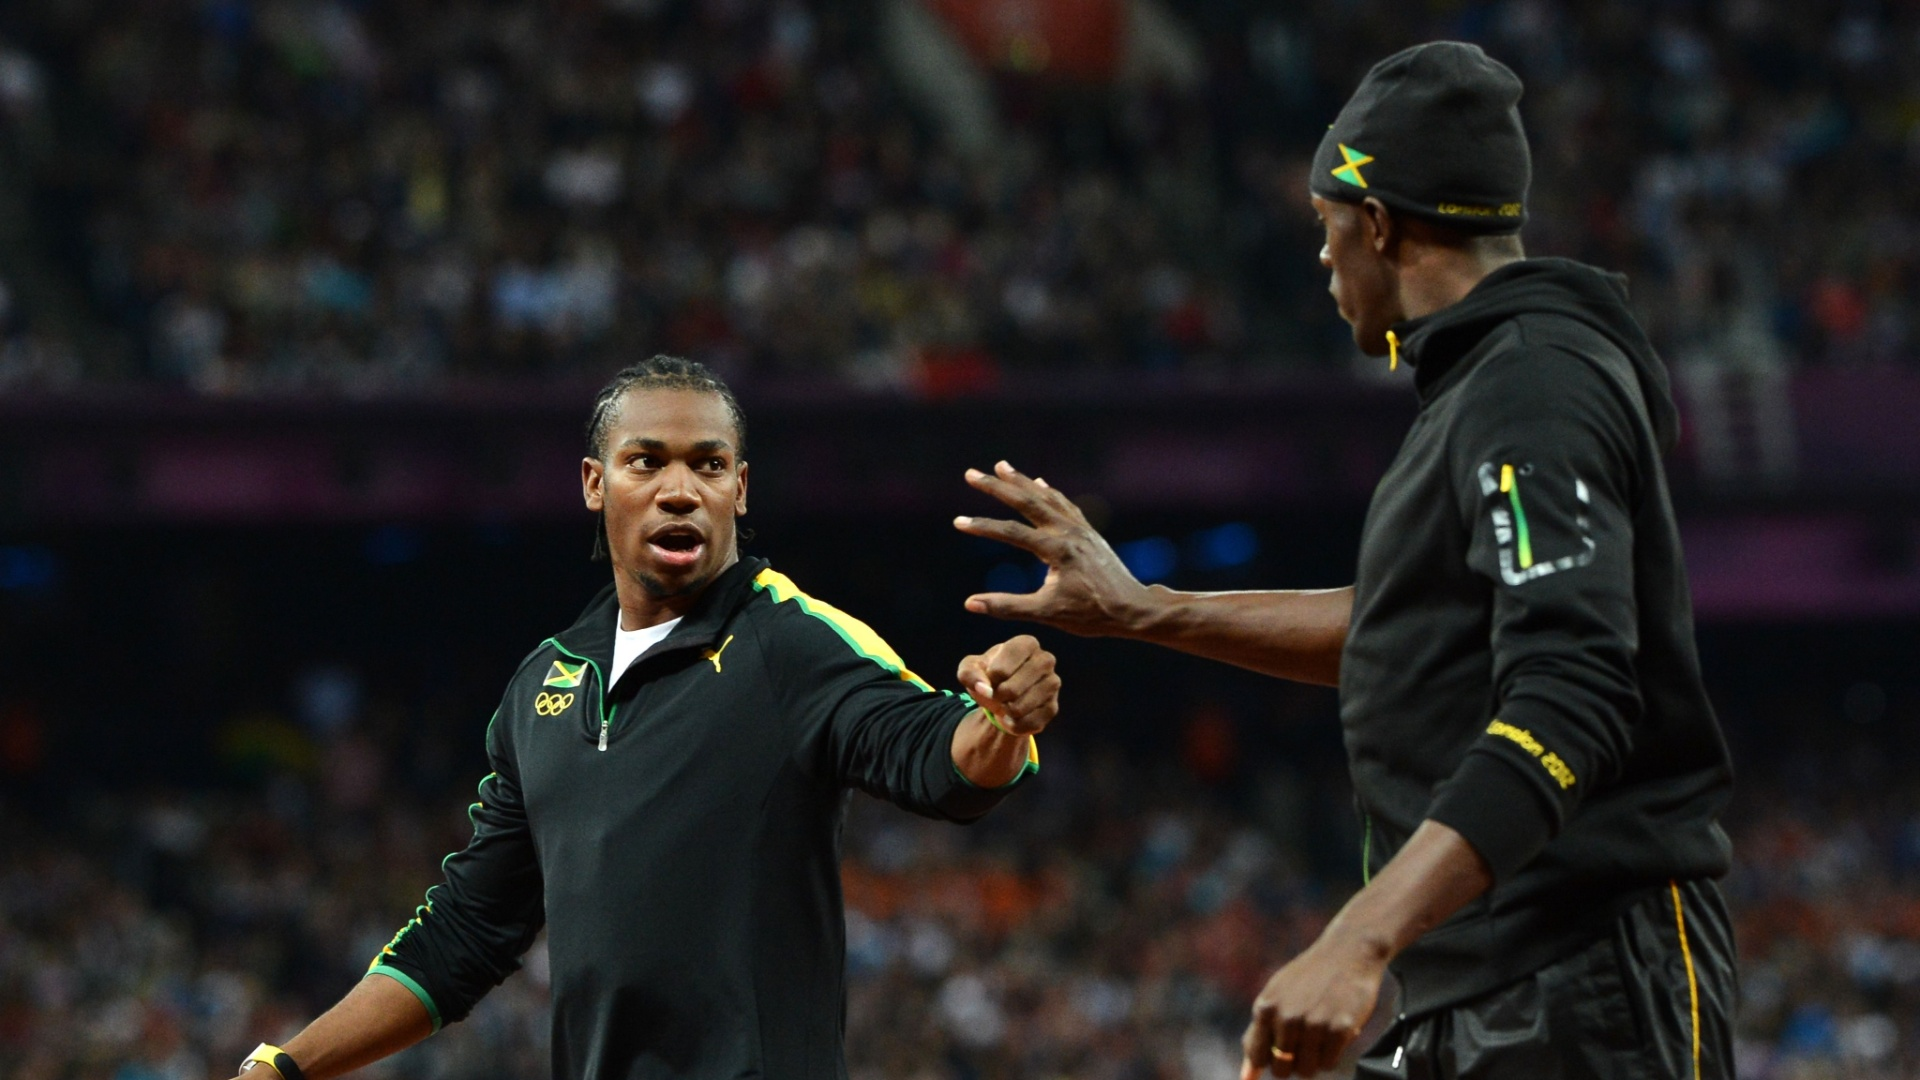 Jamaicanos Usain Bolt e Yohan Blake cumprimentam-se antes da final olmpica dos 100 m rasos